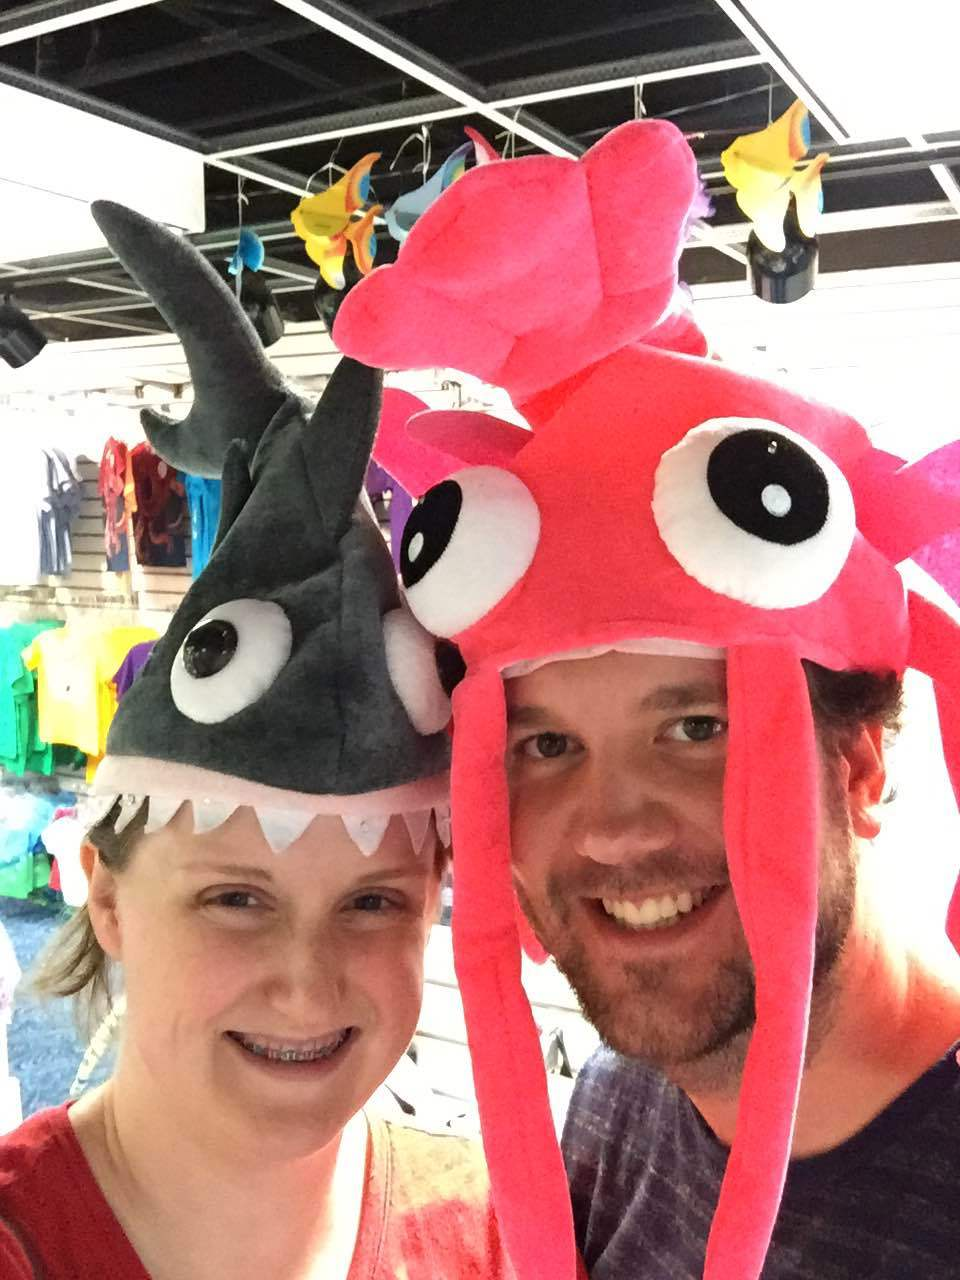 Trying on silly fish hats at Moody Gardens.